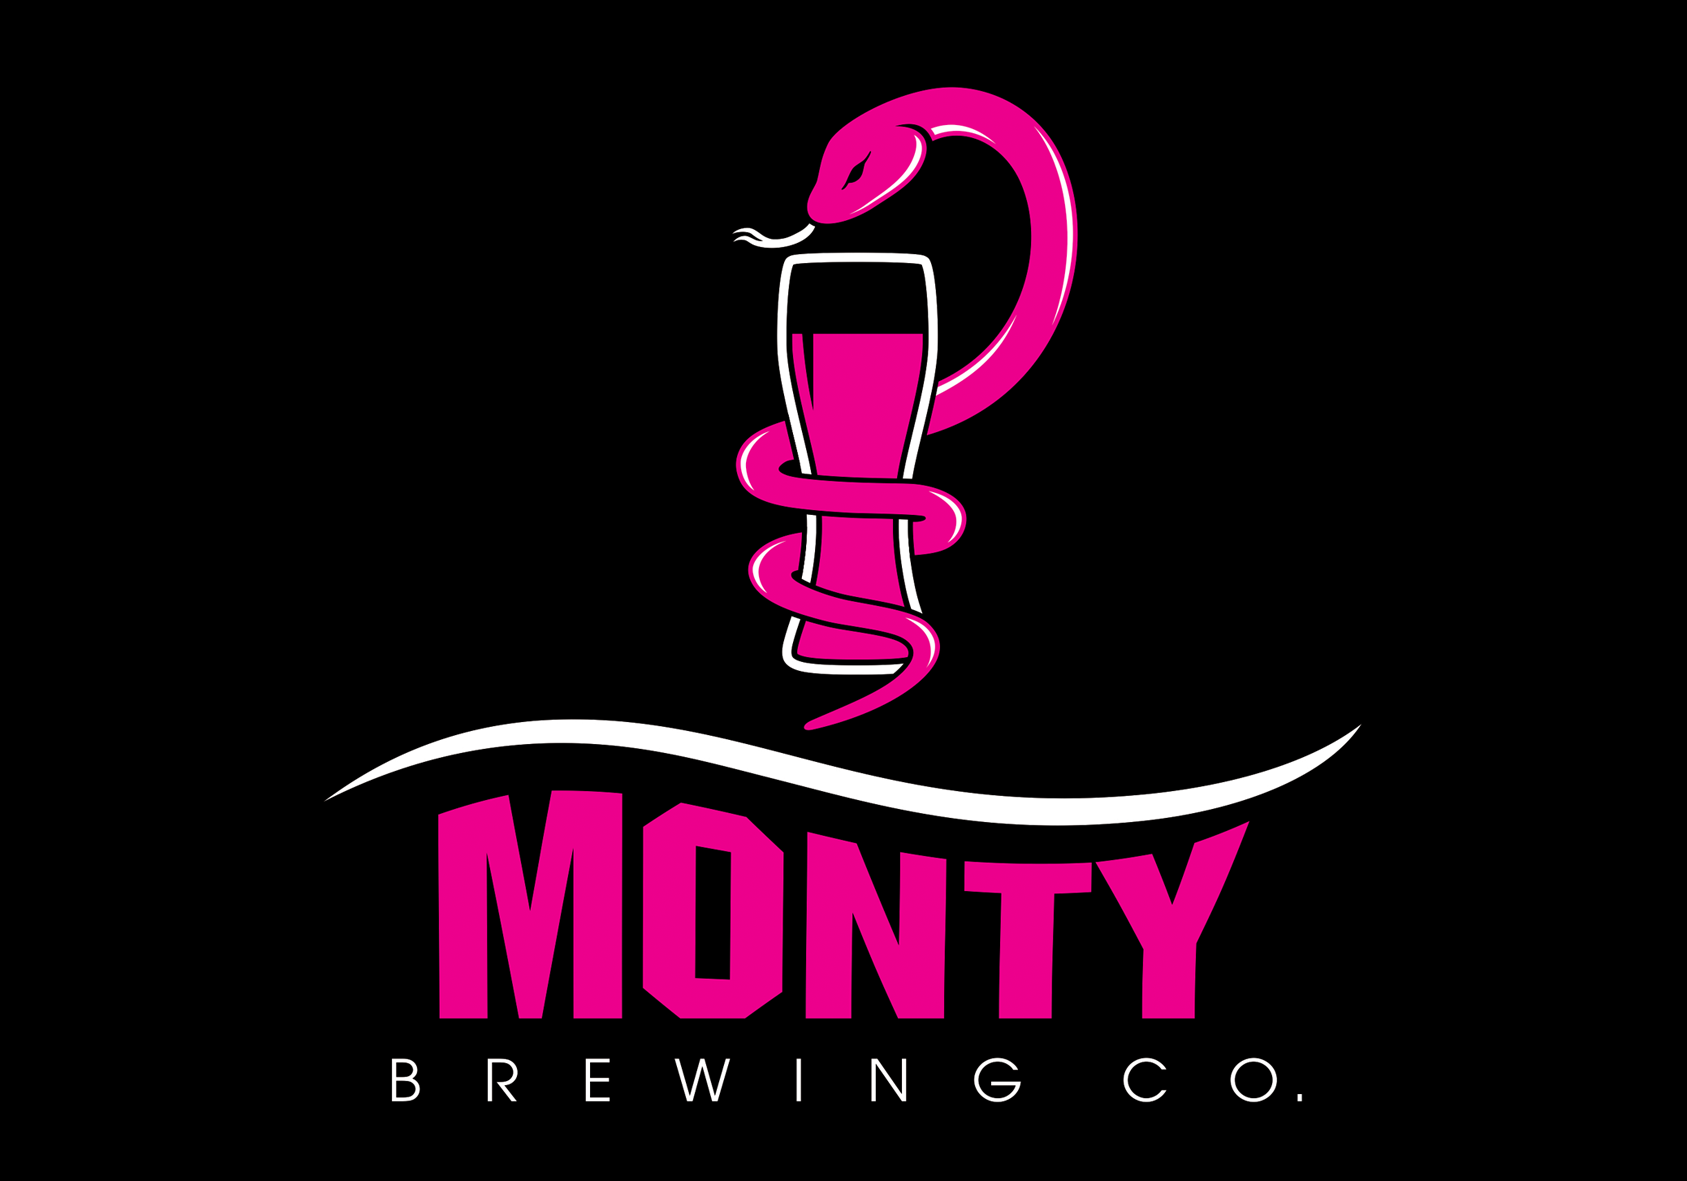 Monty Brewing Co.